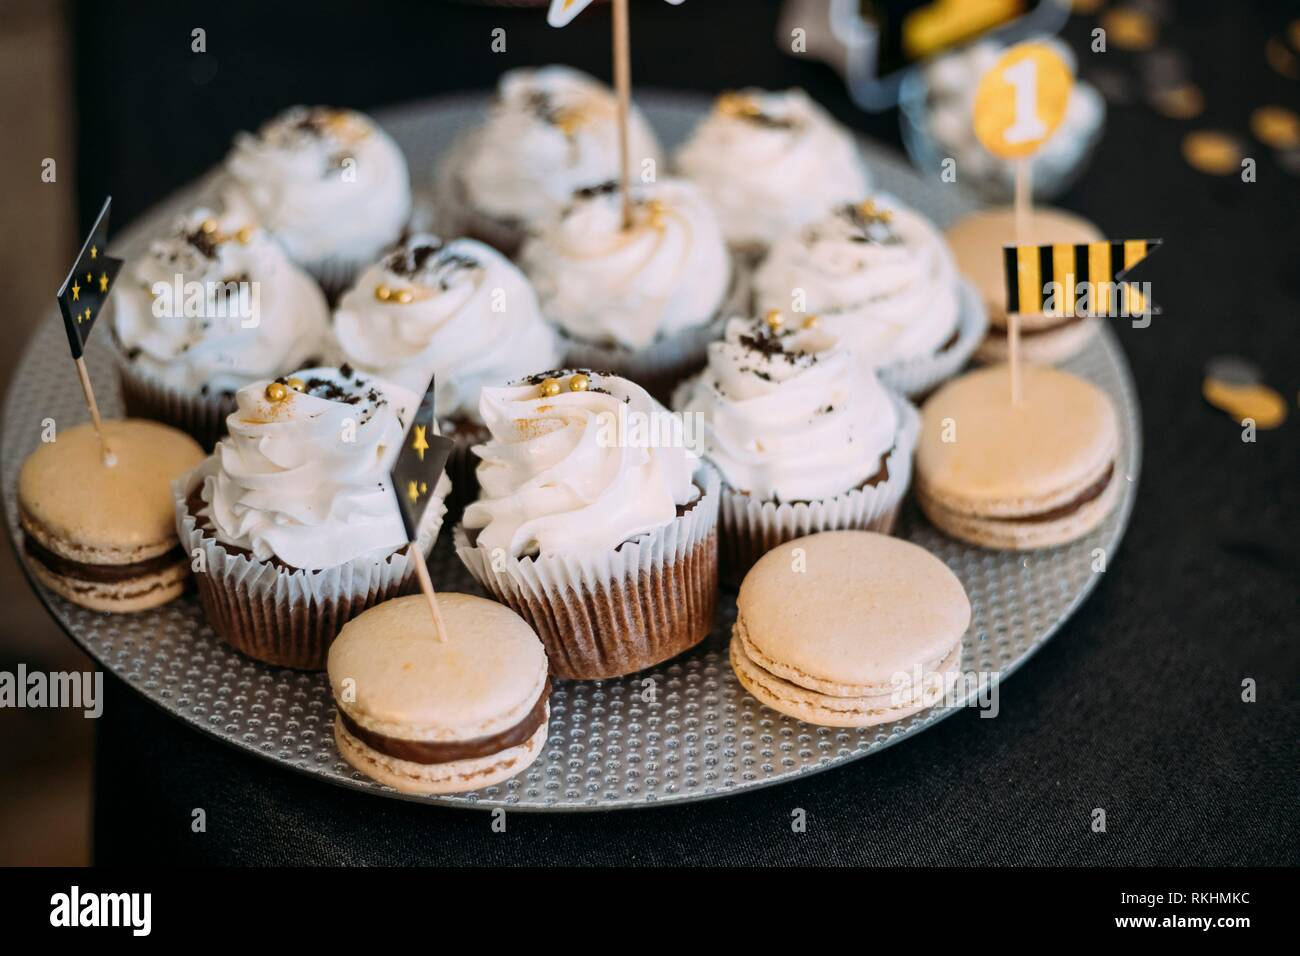 Dessert Sweet Tasty Cupcakes And Macarons In Candy Bar On